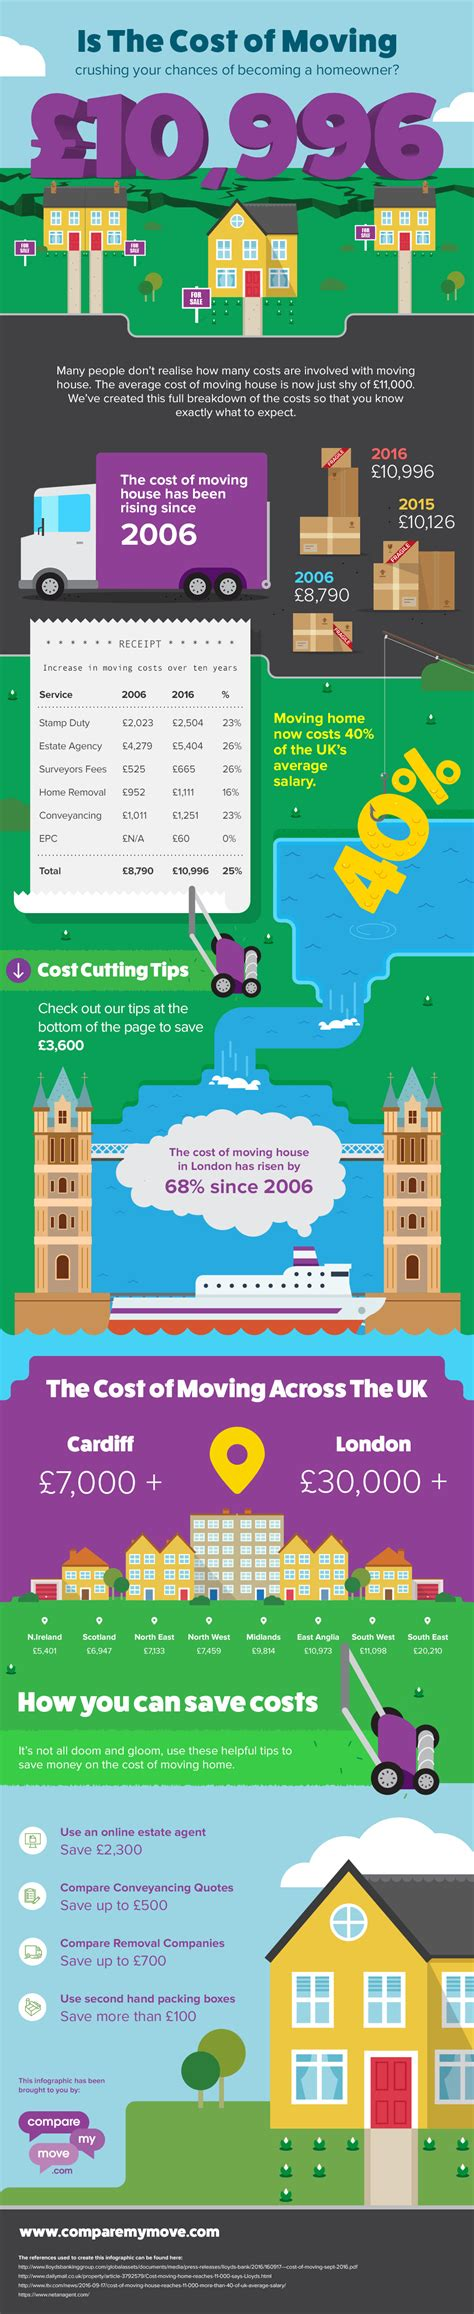 house mover cost the cost of moving house infographic compare my move the